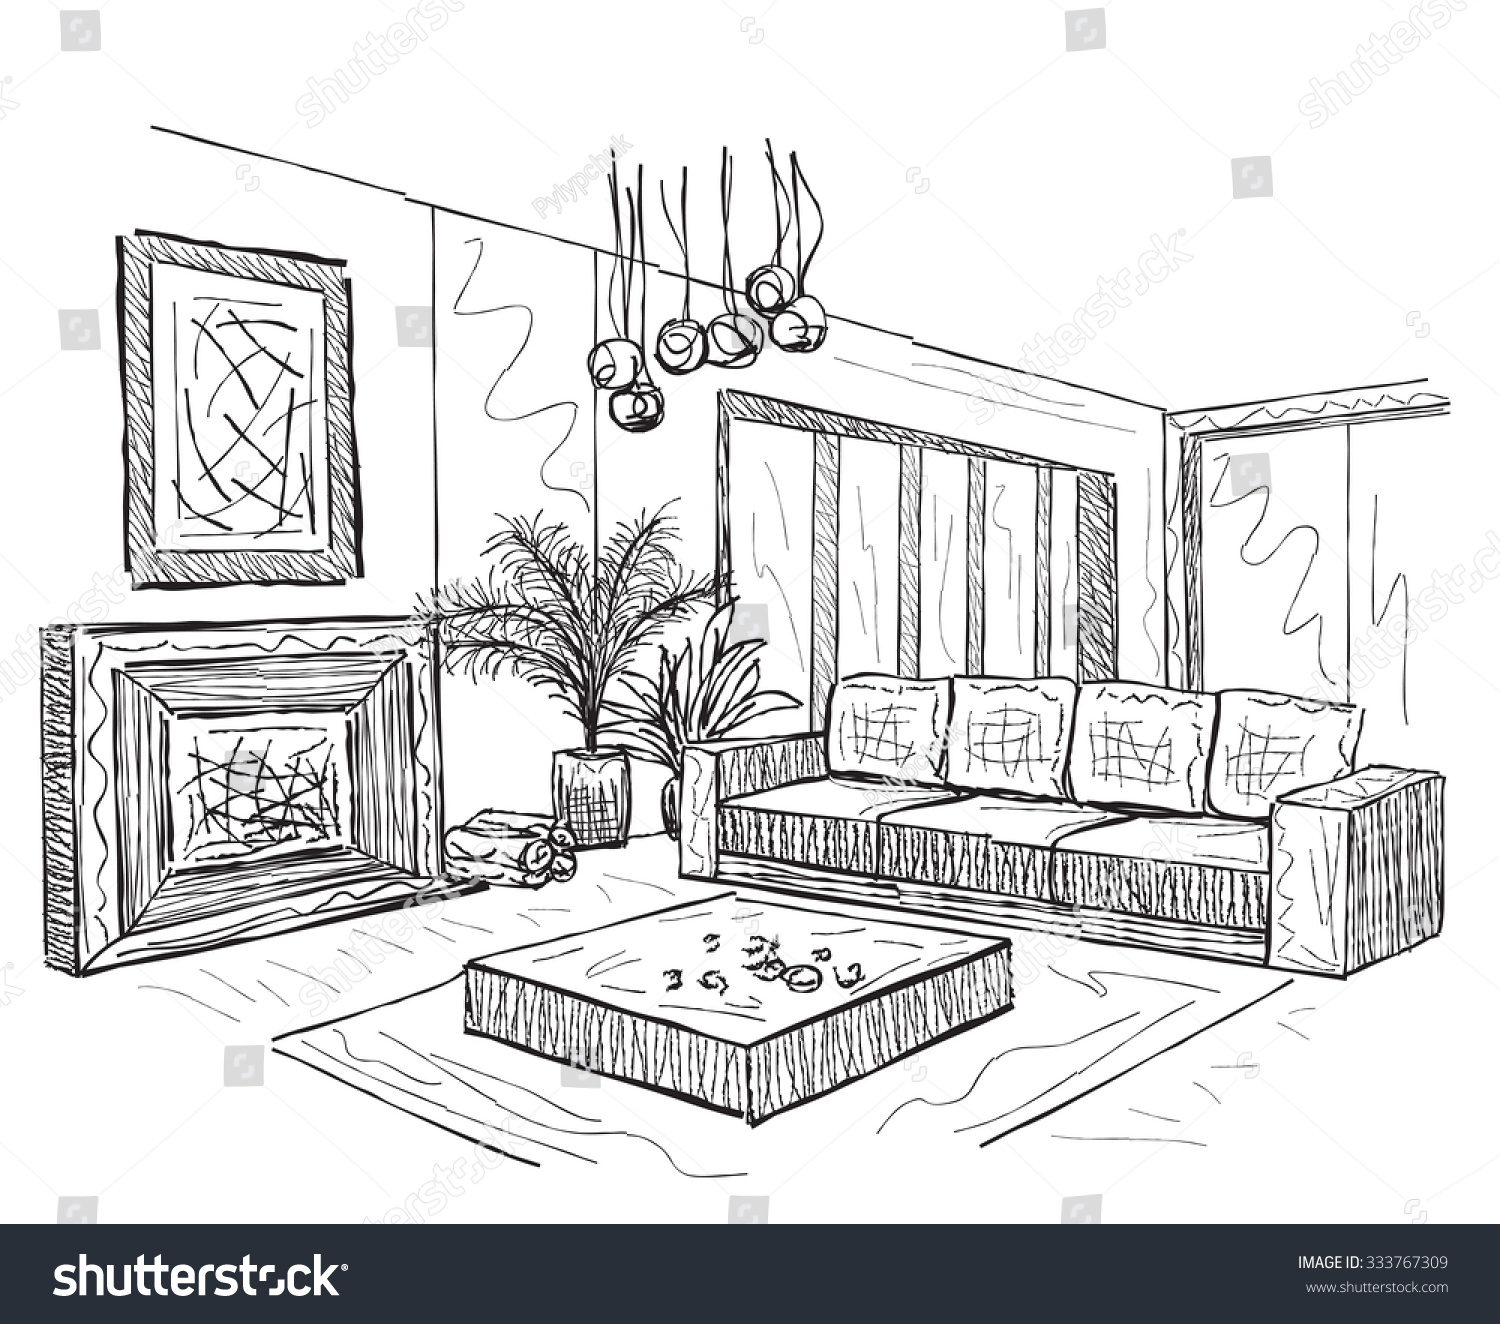 Room Interior Sketch. Hand Drawn Furniture In Living Room